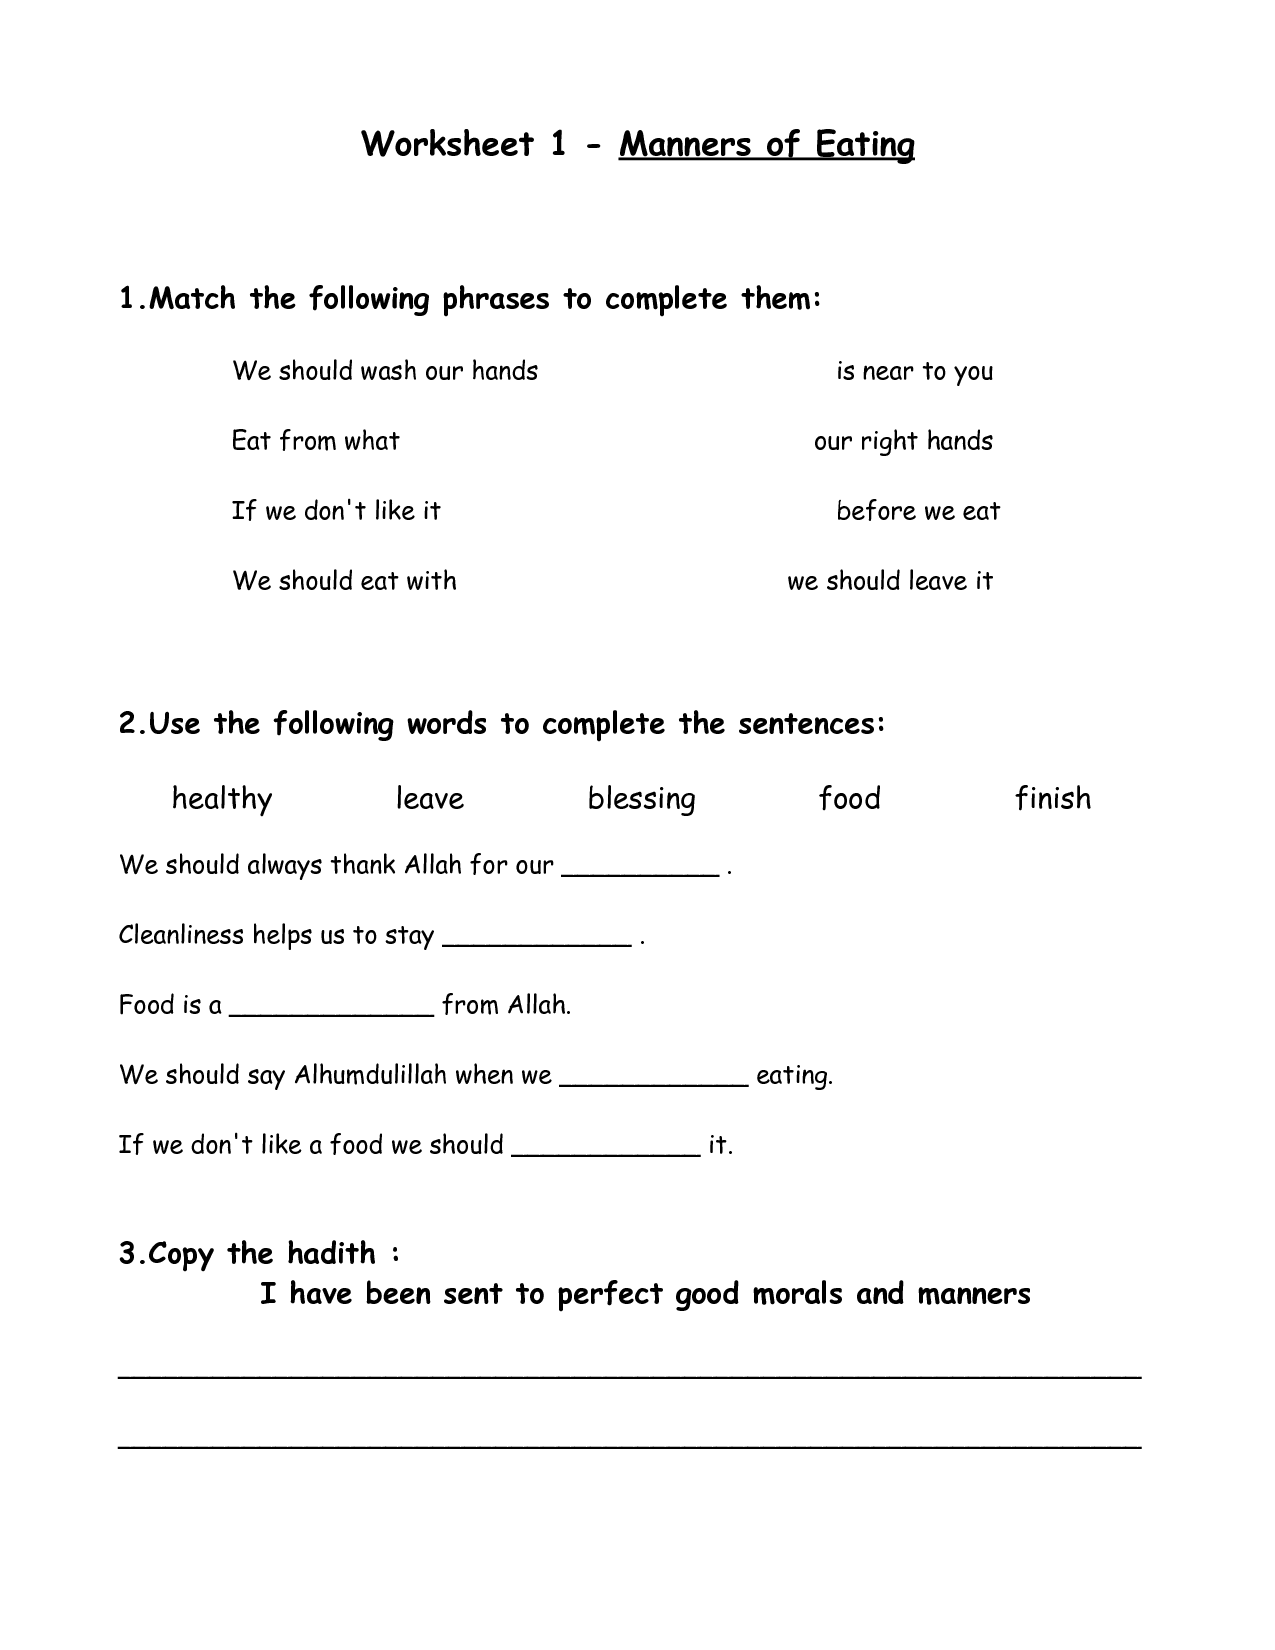 Worksheets Table Manners Worksheet table manners printable worksheets worksheet 1 of eating eating